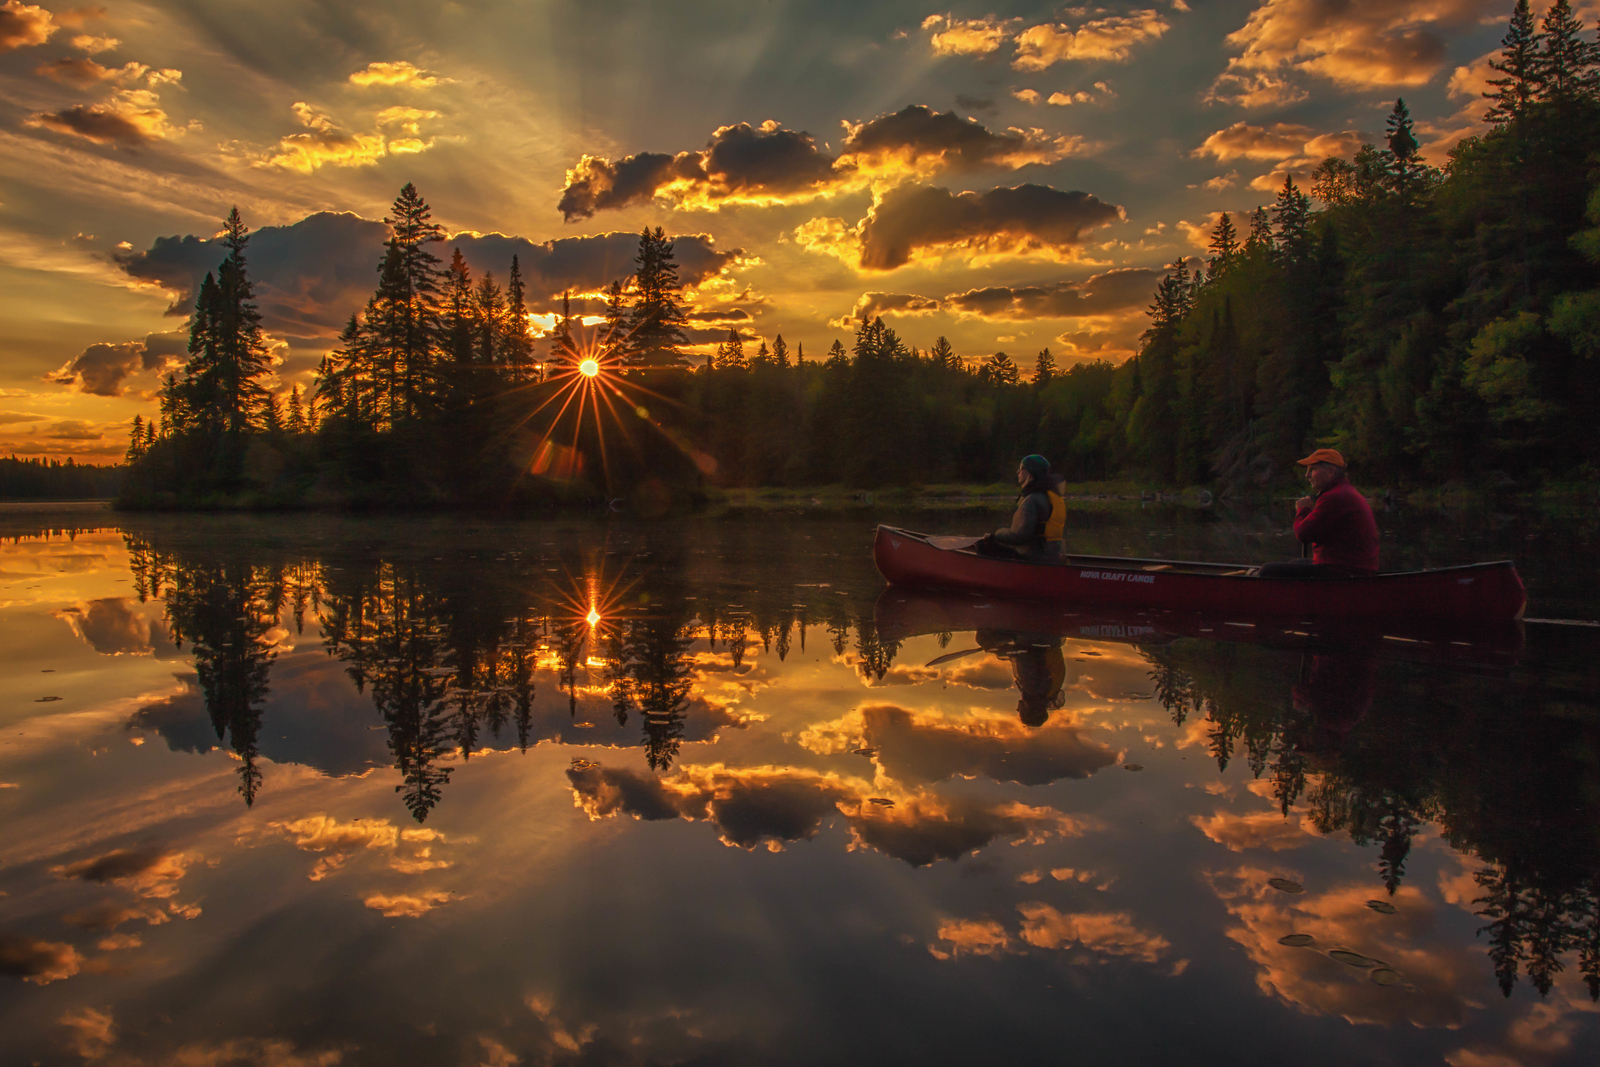 Sunrise in Algonquin Park